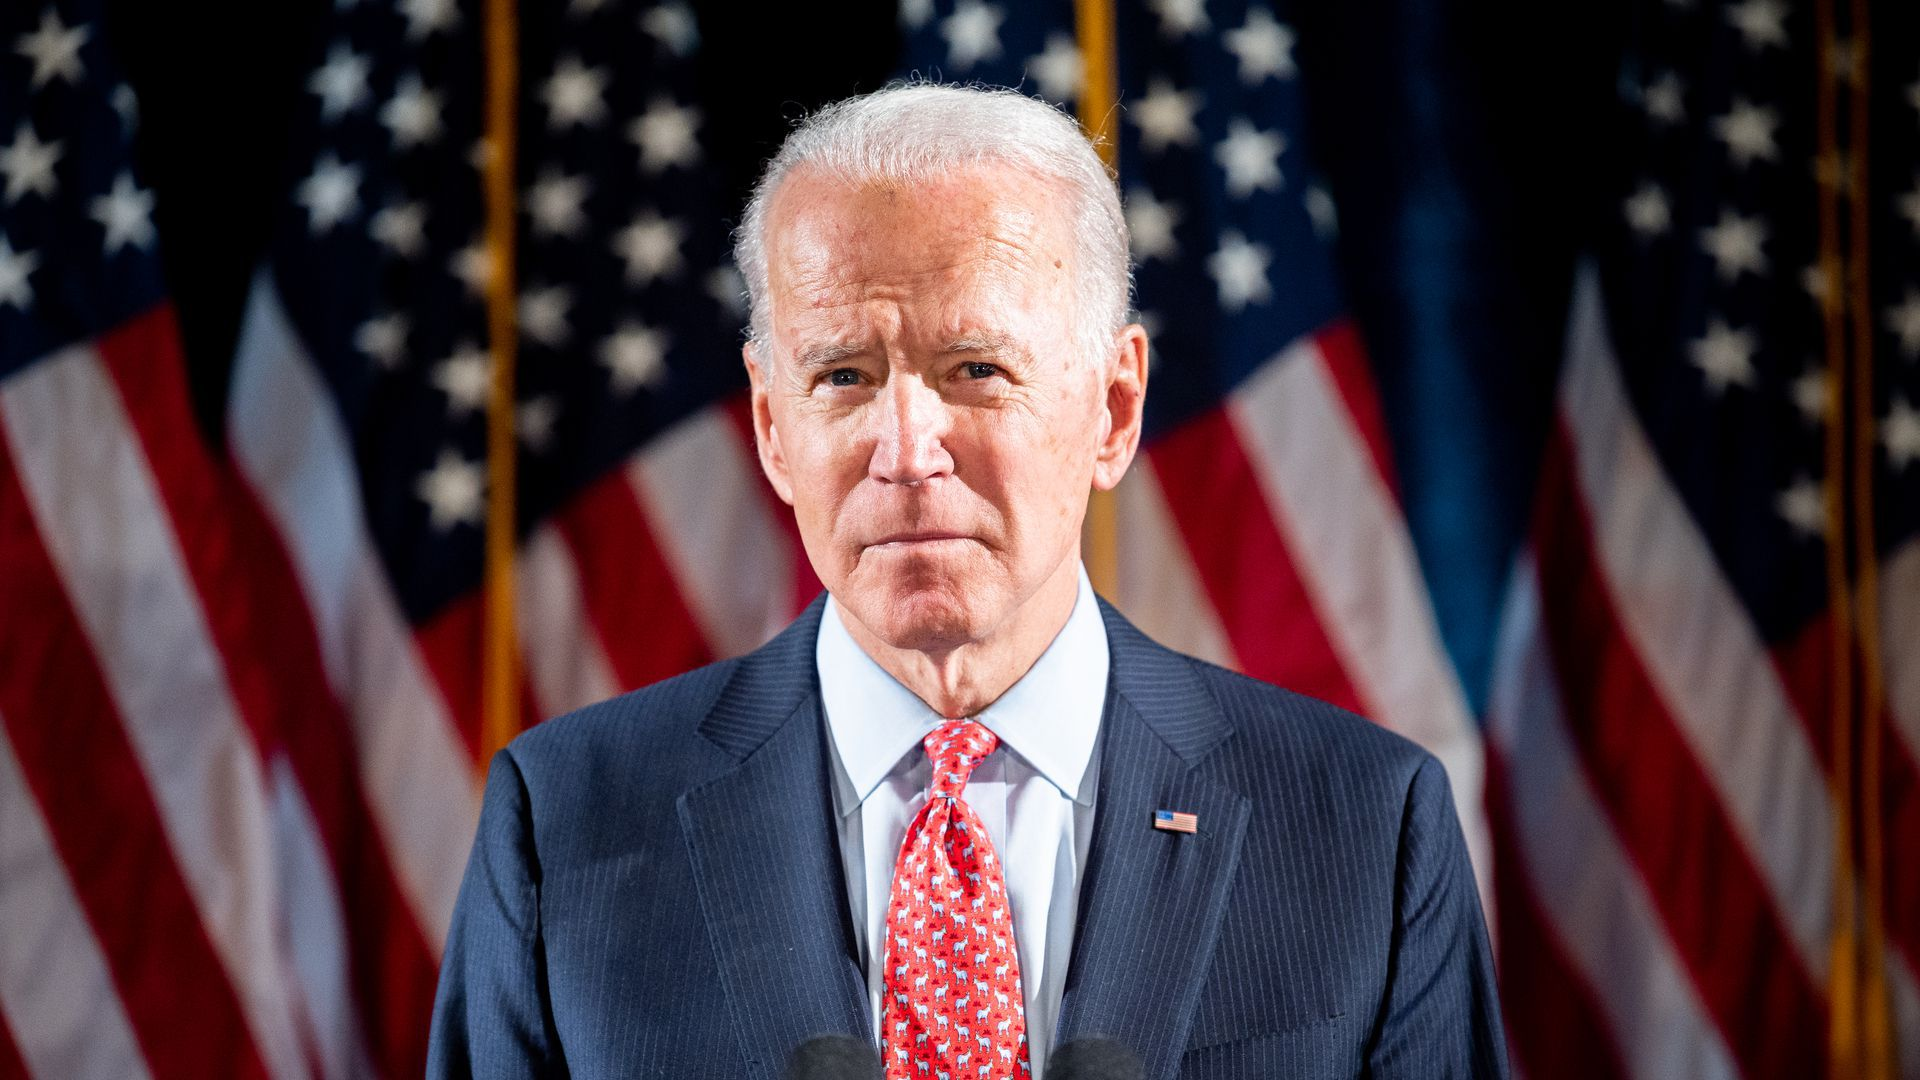 Comment contacter Joe Biden?